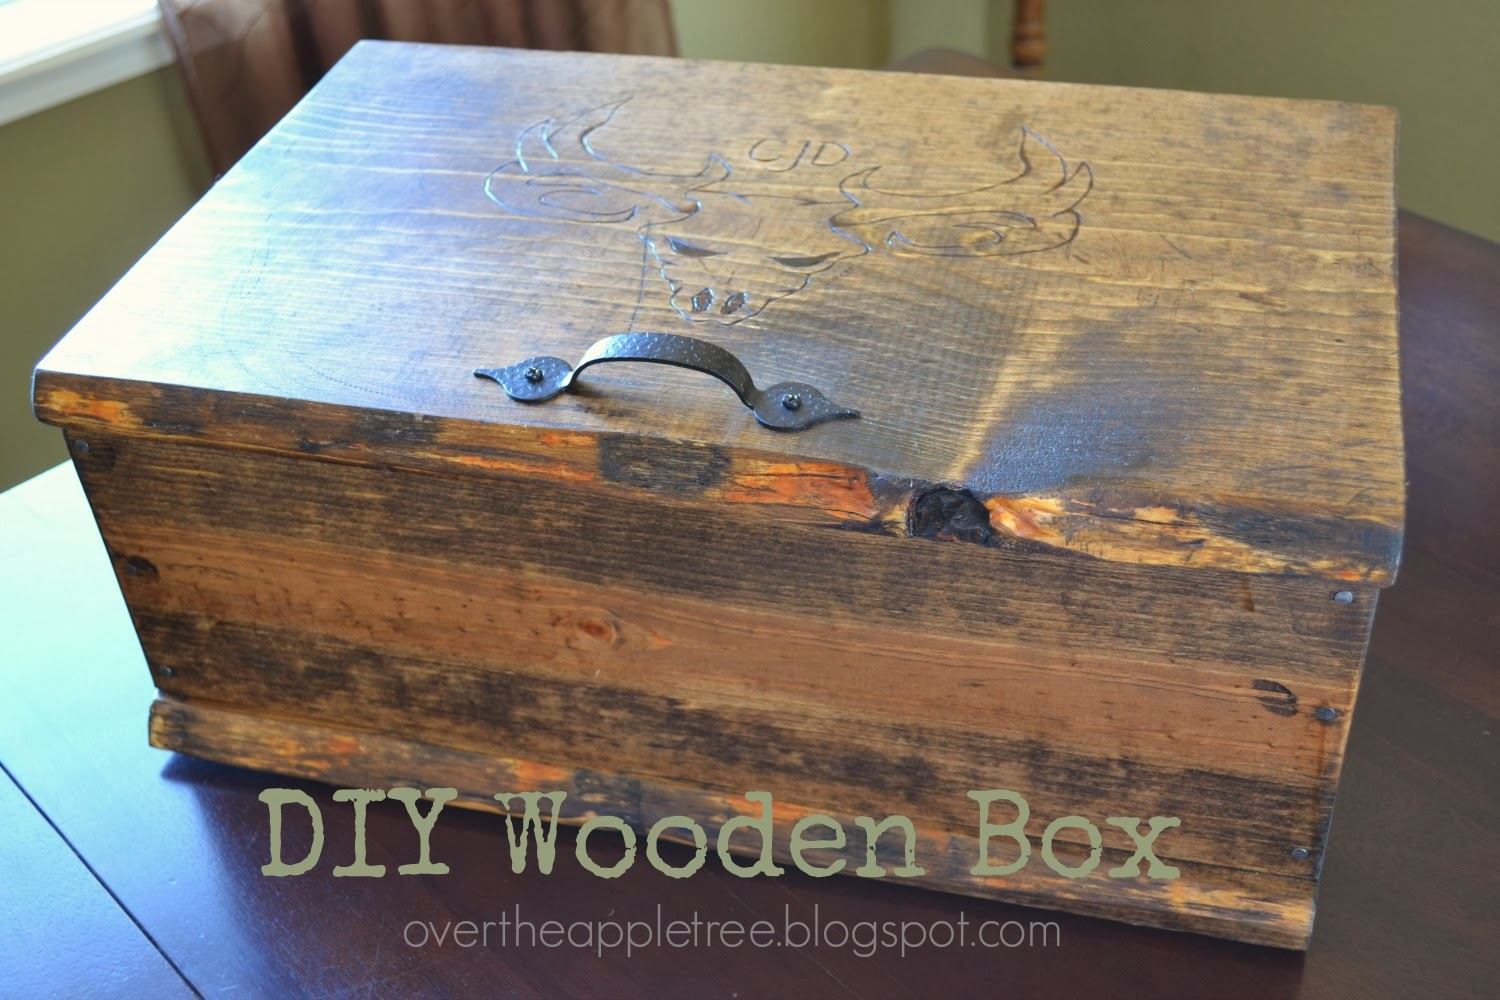 Over the apple tree diy wooden box for Diy decorative wood boxes